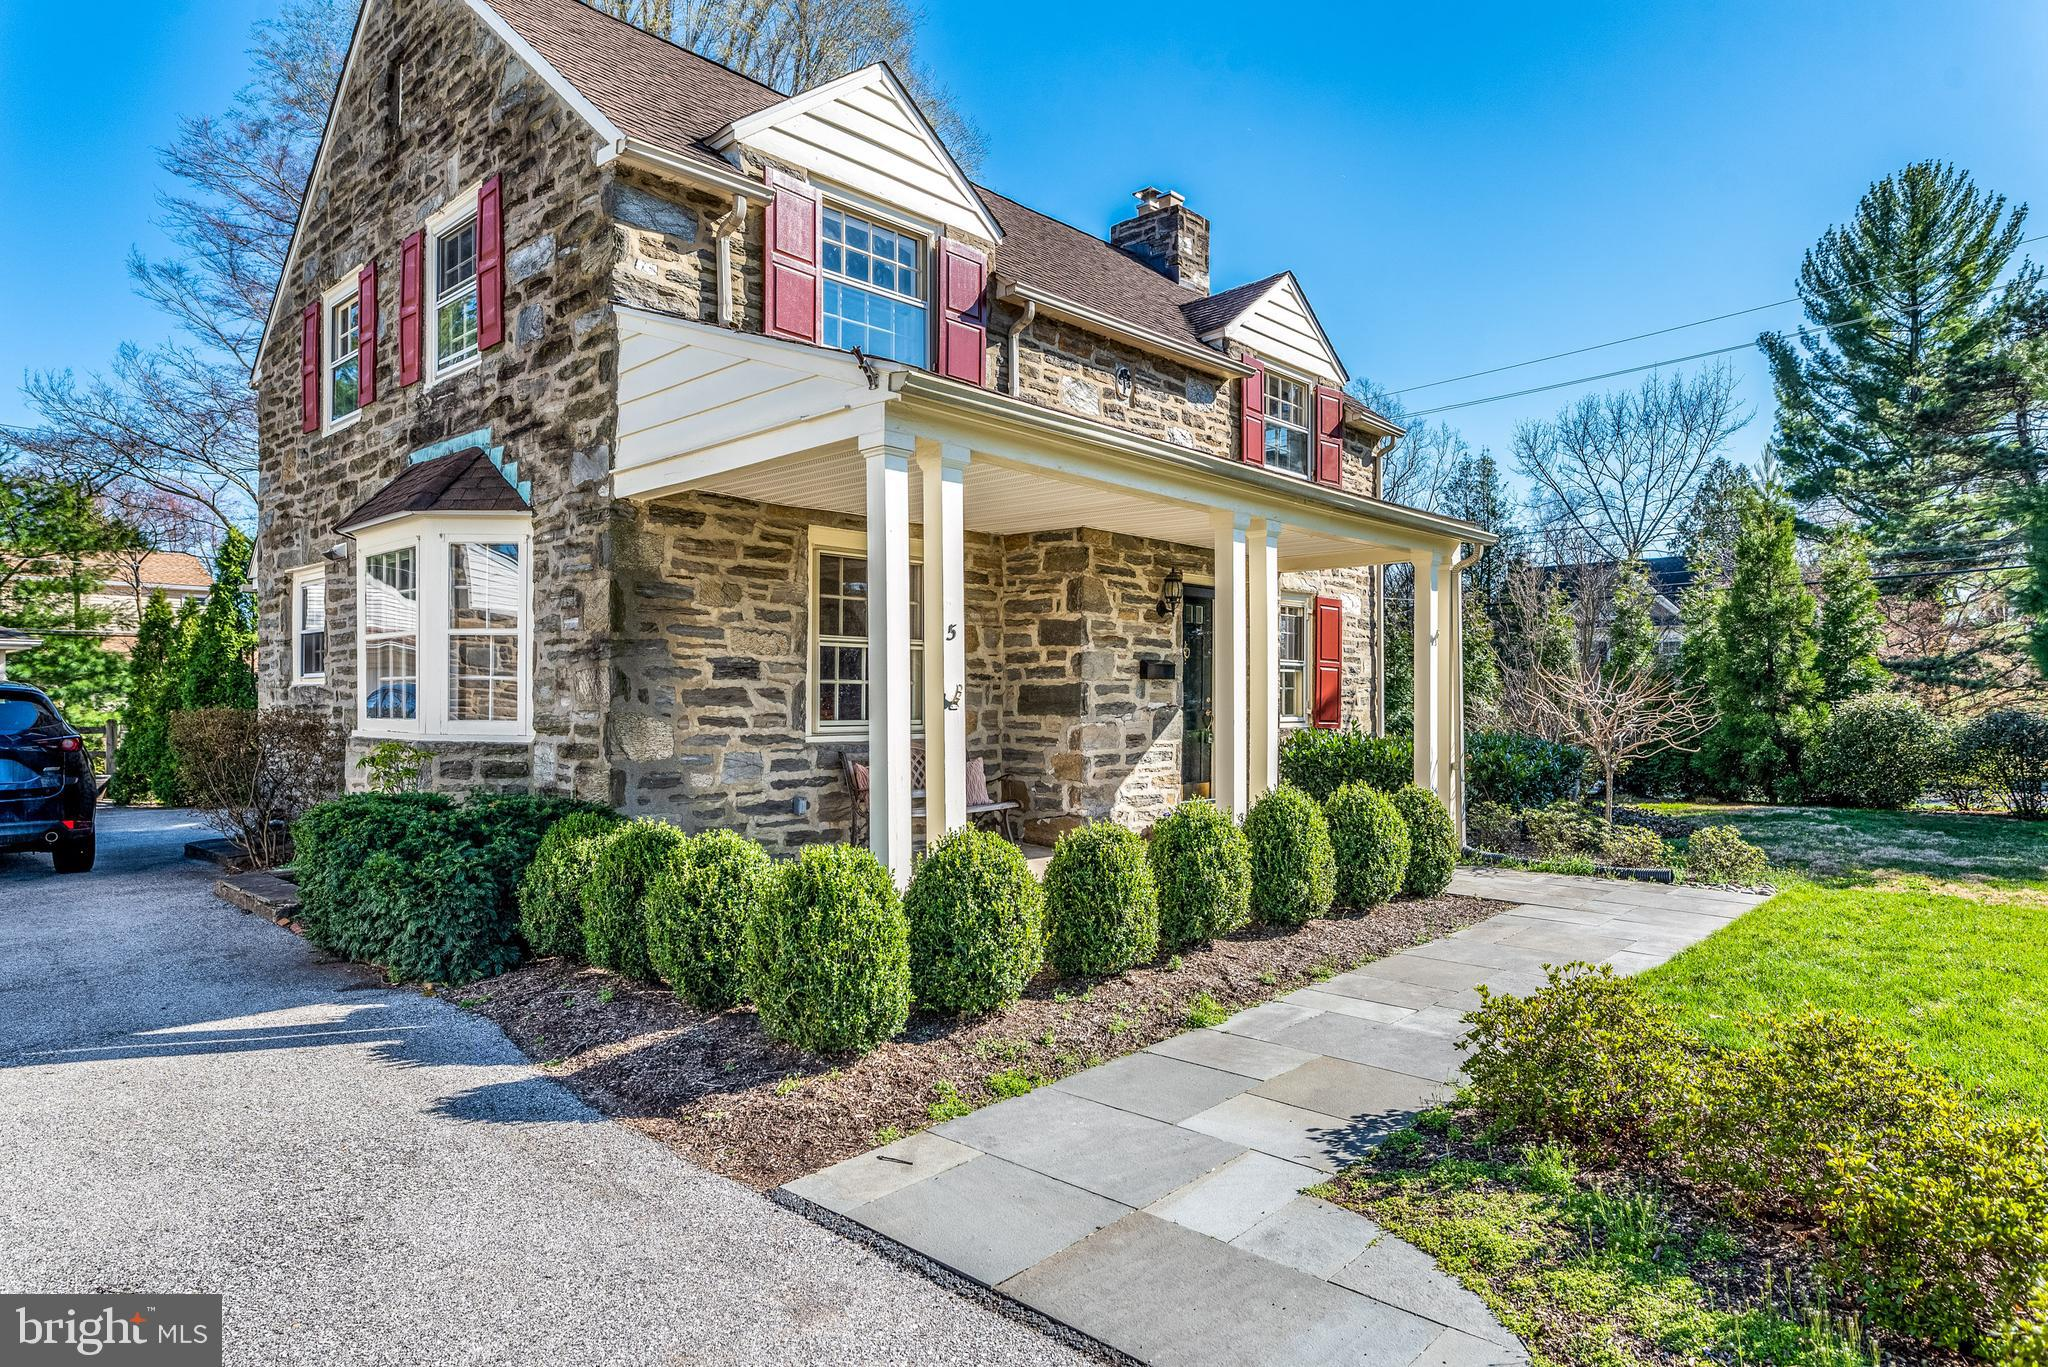 Welcome to 5 Golfview Road, Ardmore in the highly sought-after neighborhood of Merion Golf Manor in Haverford Township!  This classic, and architecturally rich, 2-story 2,062 SF Stone Colonial features 4 bedrooms   2 full and 1 half bathrooms and a detached garage situated on a level, corner lot with mature trees and landscaping.  Greet your neighbors or guests from your inviting front patio as you sip your morning coffee or a cocktail on a mild spring evening. The main floor features a large Living Room with a wood-burning fireplace , hardwood floors, built-in shelving and natural sunlight streaming into the room from the oversized windows with deep windowsills; a Formal Dining Room with built-in corner cupboards, hardwood floors, and a beautiful Bay Window allowing for an abundance of natural light; a newer, updated Kitchen with granite countertops and stainless steel appliances; a main floor powder room; a Family Room adjacent  to the kitchen with hardwood floors and access to the covered, brick patio and rear yard and gardens!  The second floor features the main bedroom with ensuite bathroom; 3 additional bedrooms; a newer updated hall bathroom with a claw foot tub/shower combination! Hardwood floors throughout the entire second floor.  Bedroom 4 has access to a balcony patio overlooking the rear yard and gardens and Bedroom 2 has access to the walk-up attic. The basement is partially finished and provides the laundry area.  Escape from your busy day to the serenity of your covered brick patio and terrace shaded by a mature trees and lush, professional landscaping.  The rear yard is entirely fenced with an additional privacy fence in the back of the property.  This welcoming neighborhood offers a friendly presence and organized functions throughout the seasons.  This home is conveniently located to the Route 100 trolley into Philadelphia, the R5 train in Ardmore; Trader Joe's, Whole Foods, Suburban Square; numerous shops, stores and restaurants in Havertown and 